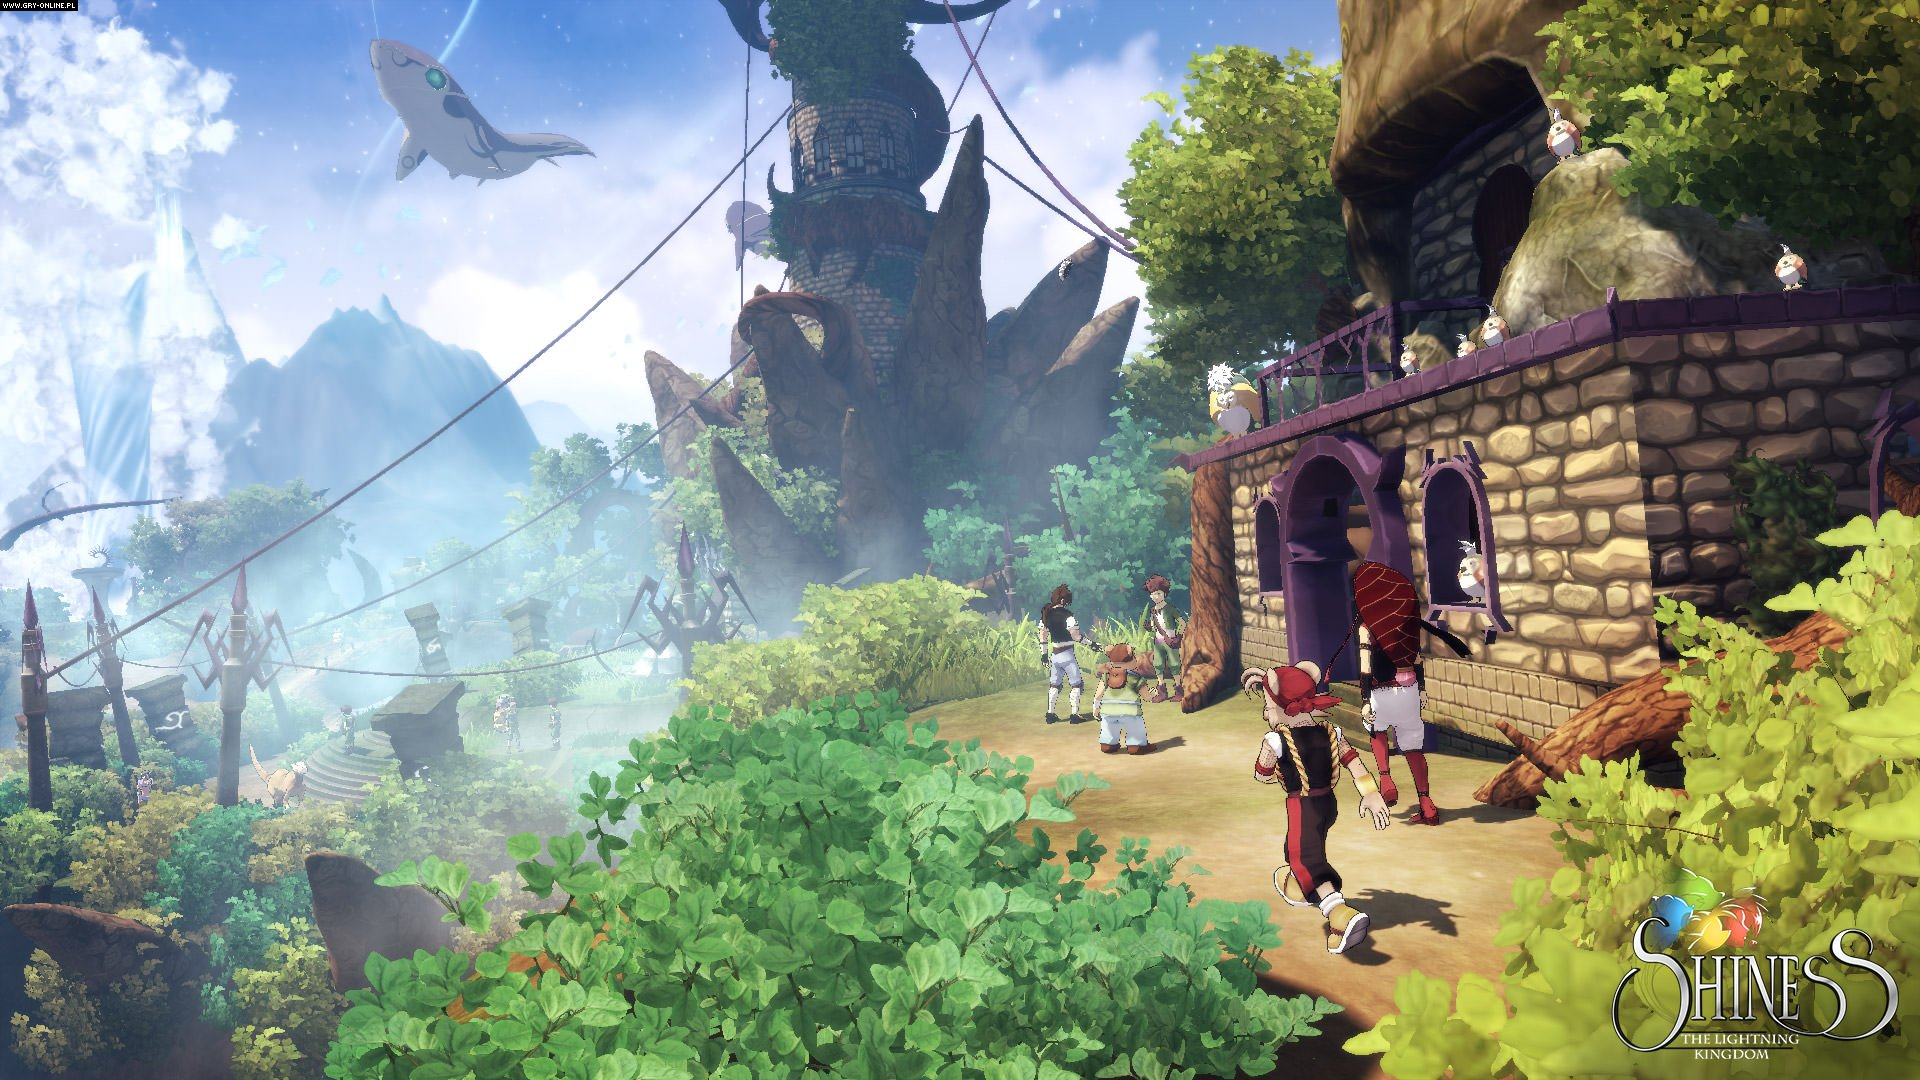 Shiness: The Lightning Kingdom XONE, PS4, PC, WiiU Games Image 1/12, Enigami, Focus Home Interactive